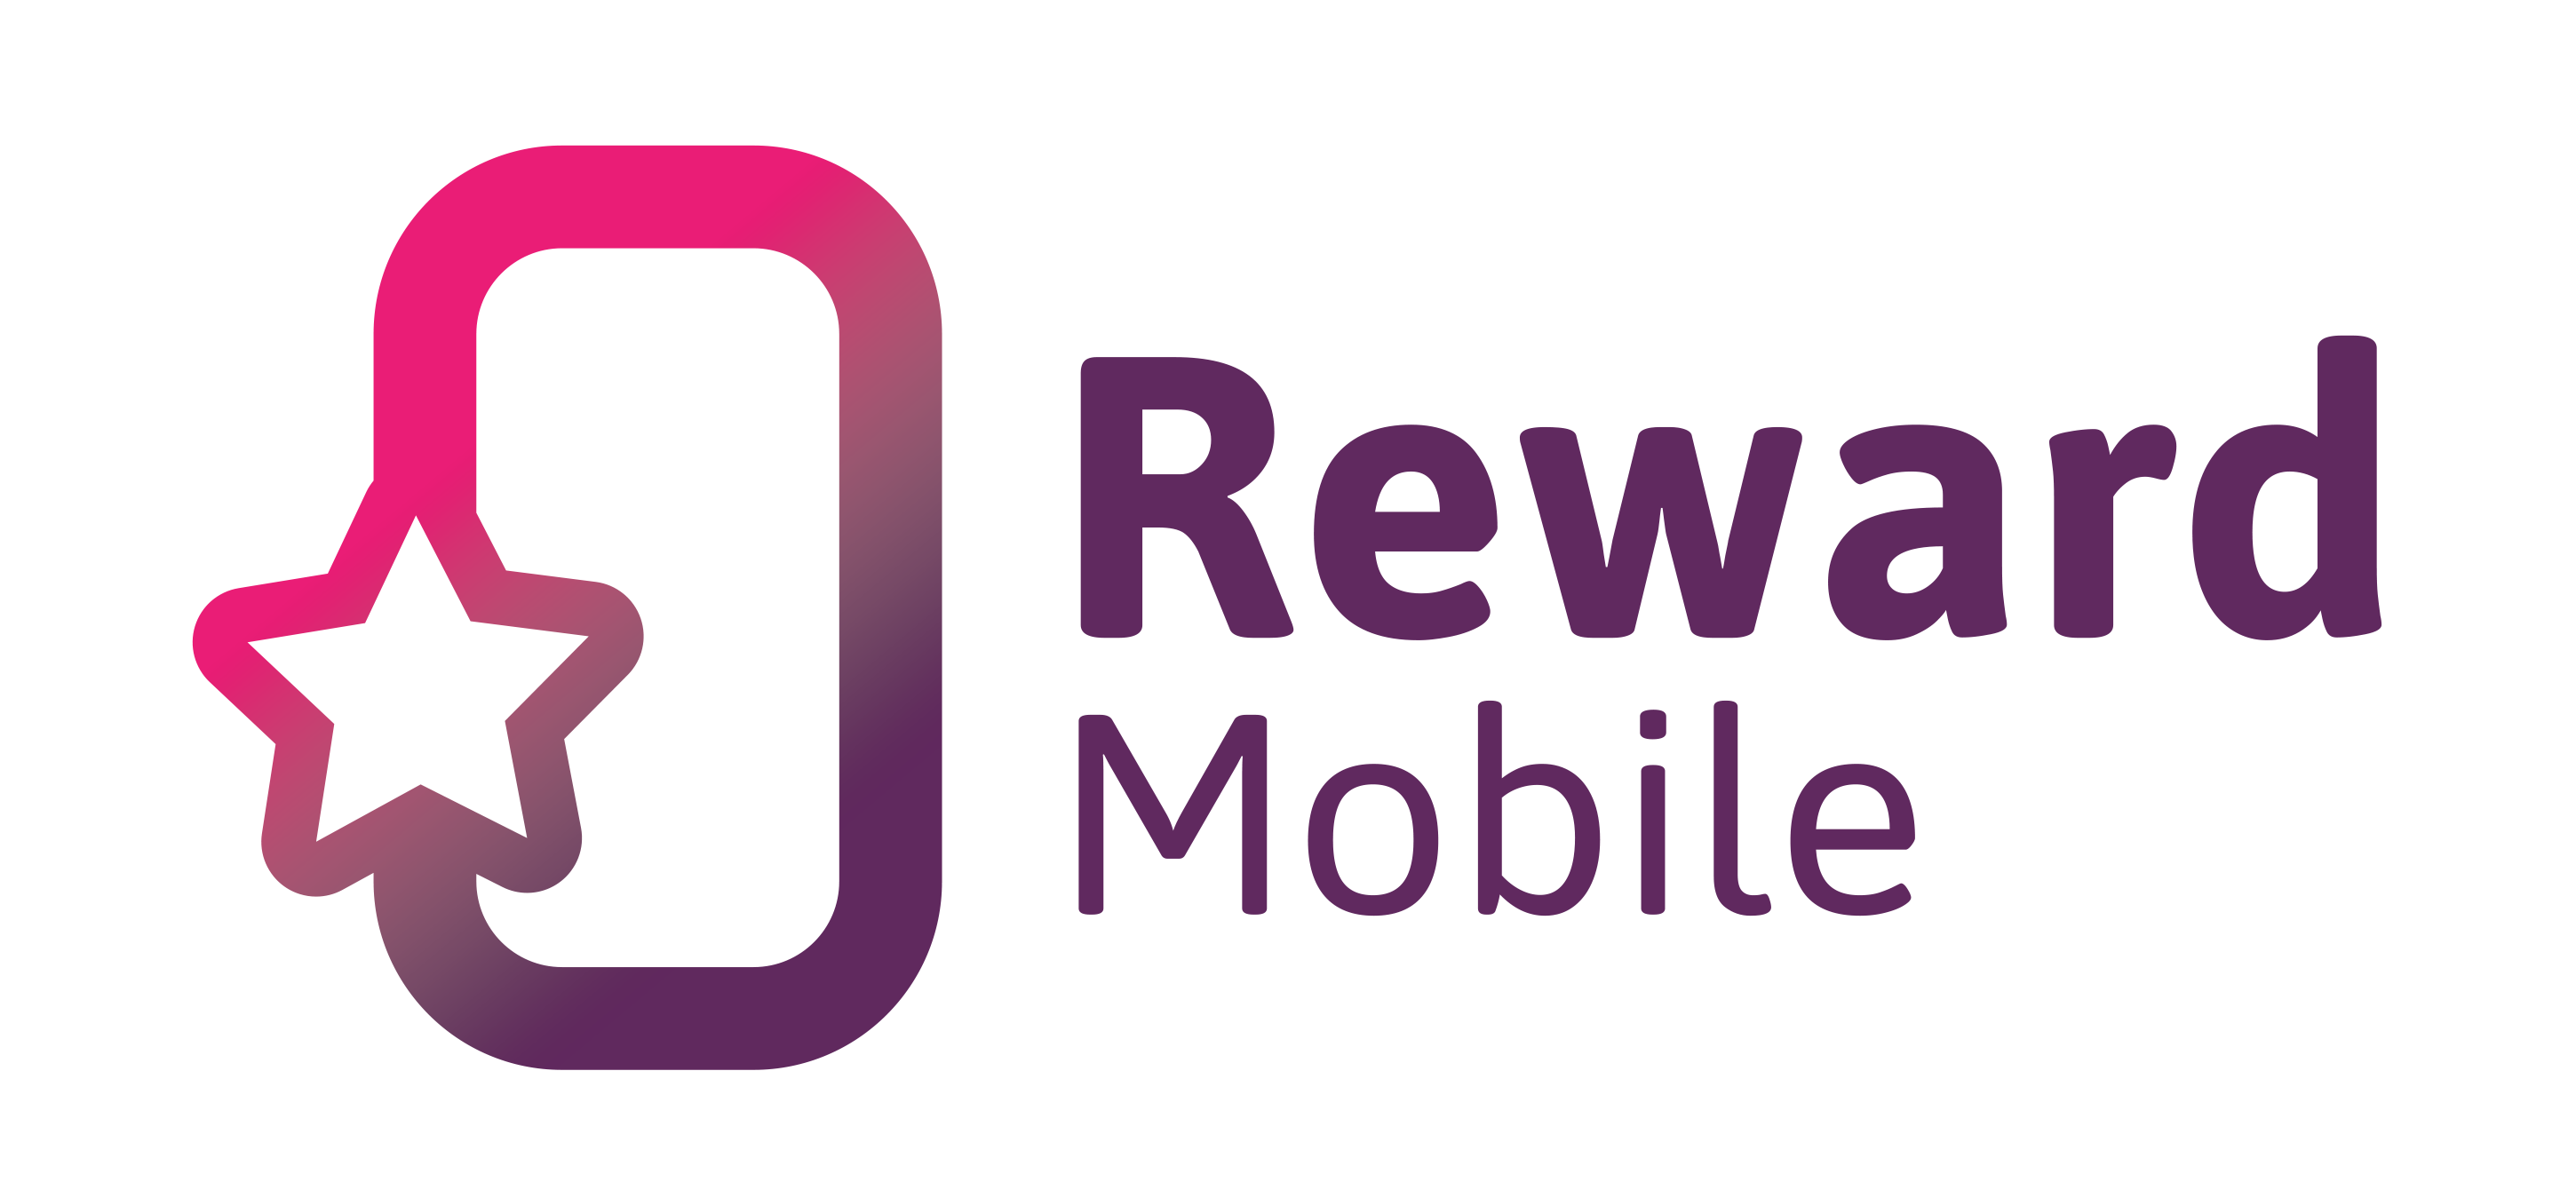 Reward Mobile from EE logo